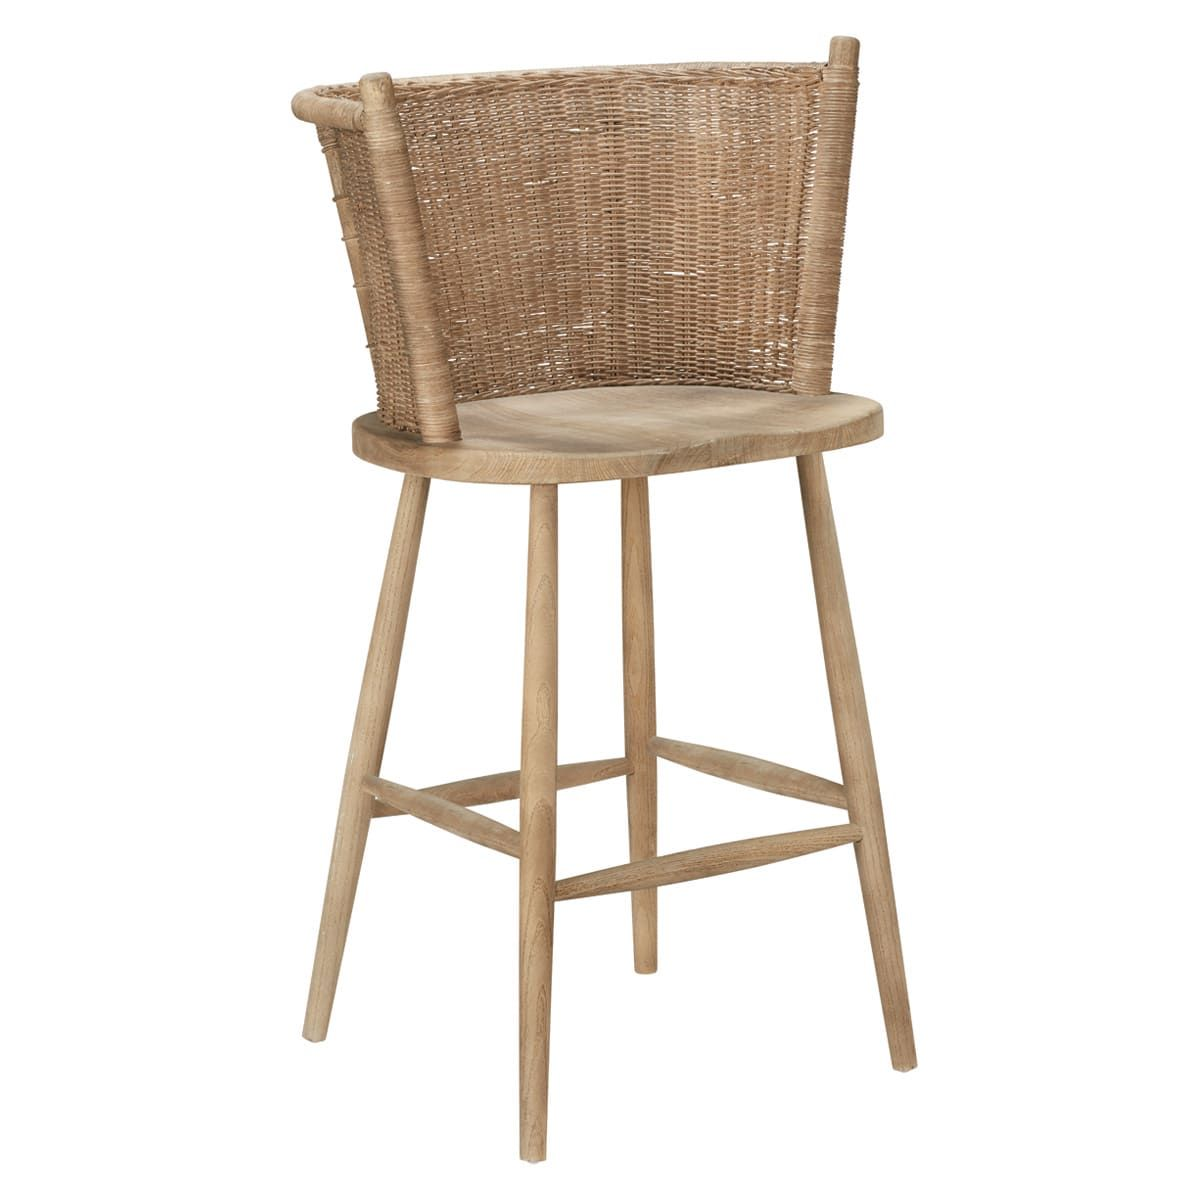 Tremendous Taino Bar Stool Furniture Chair In 2019 Stool Bar Pdpeps Interior Chair Design Pdpepsorg